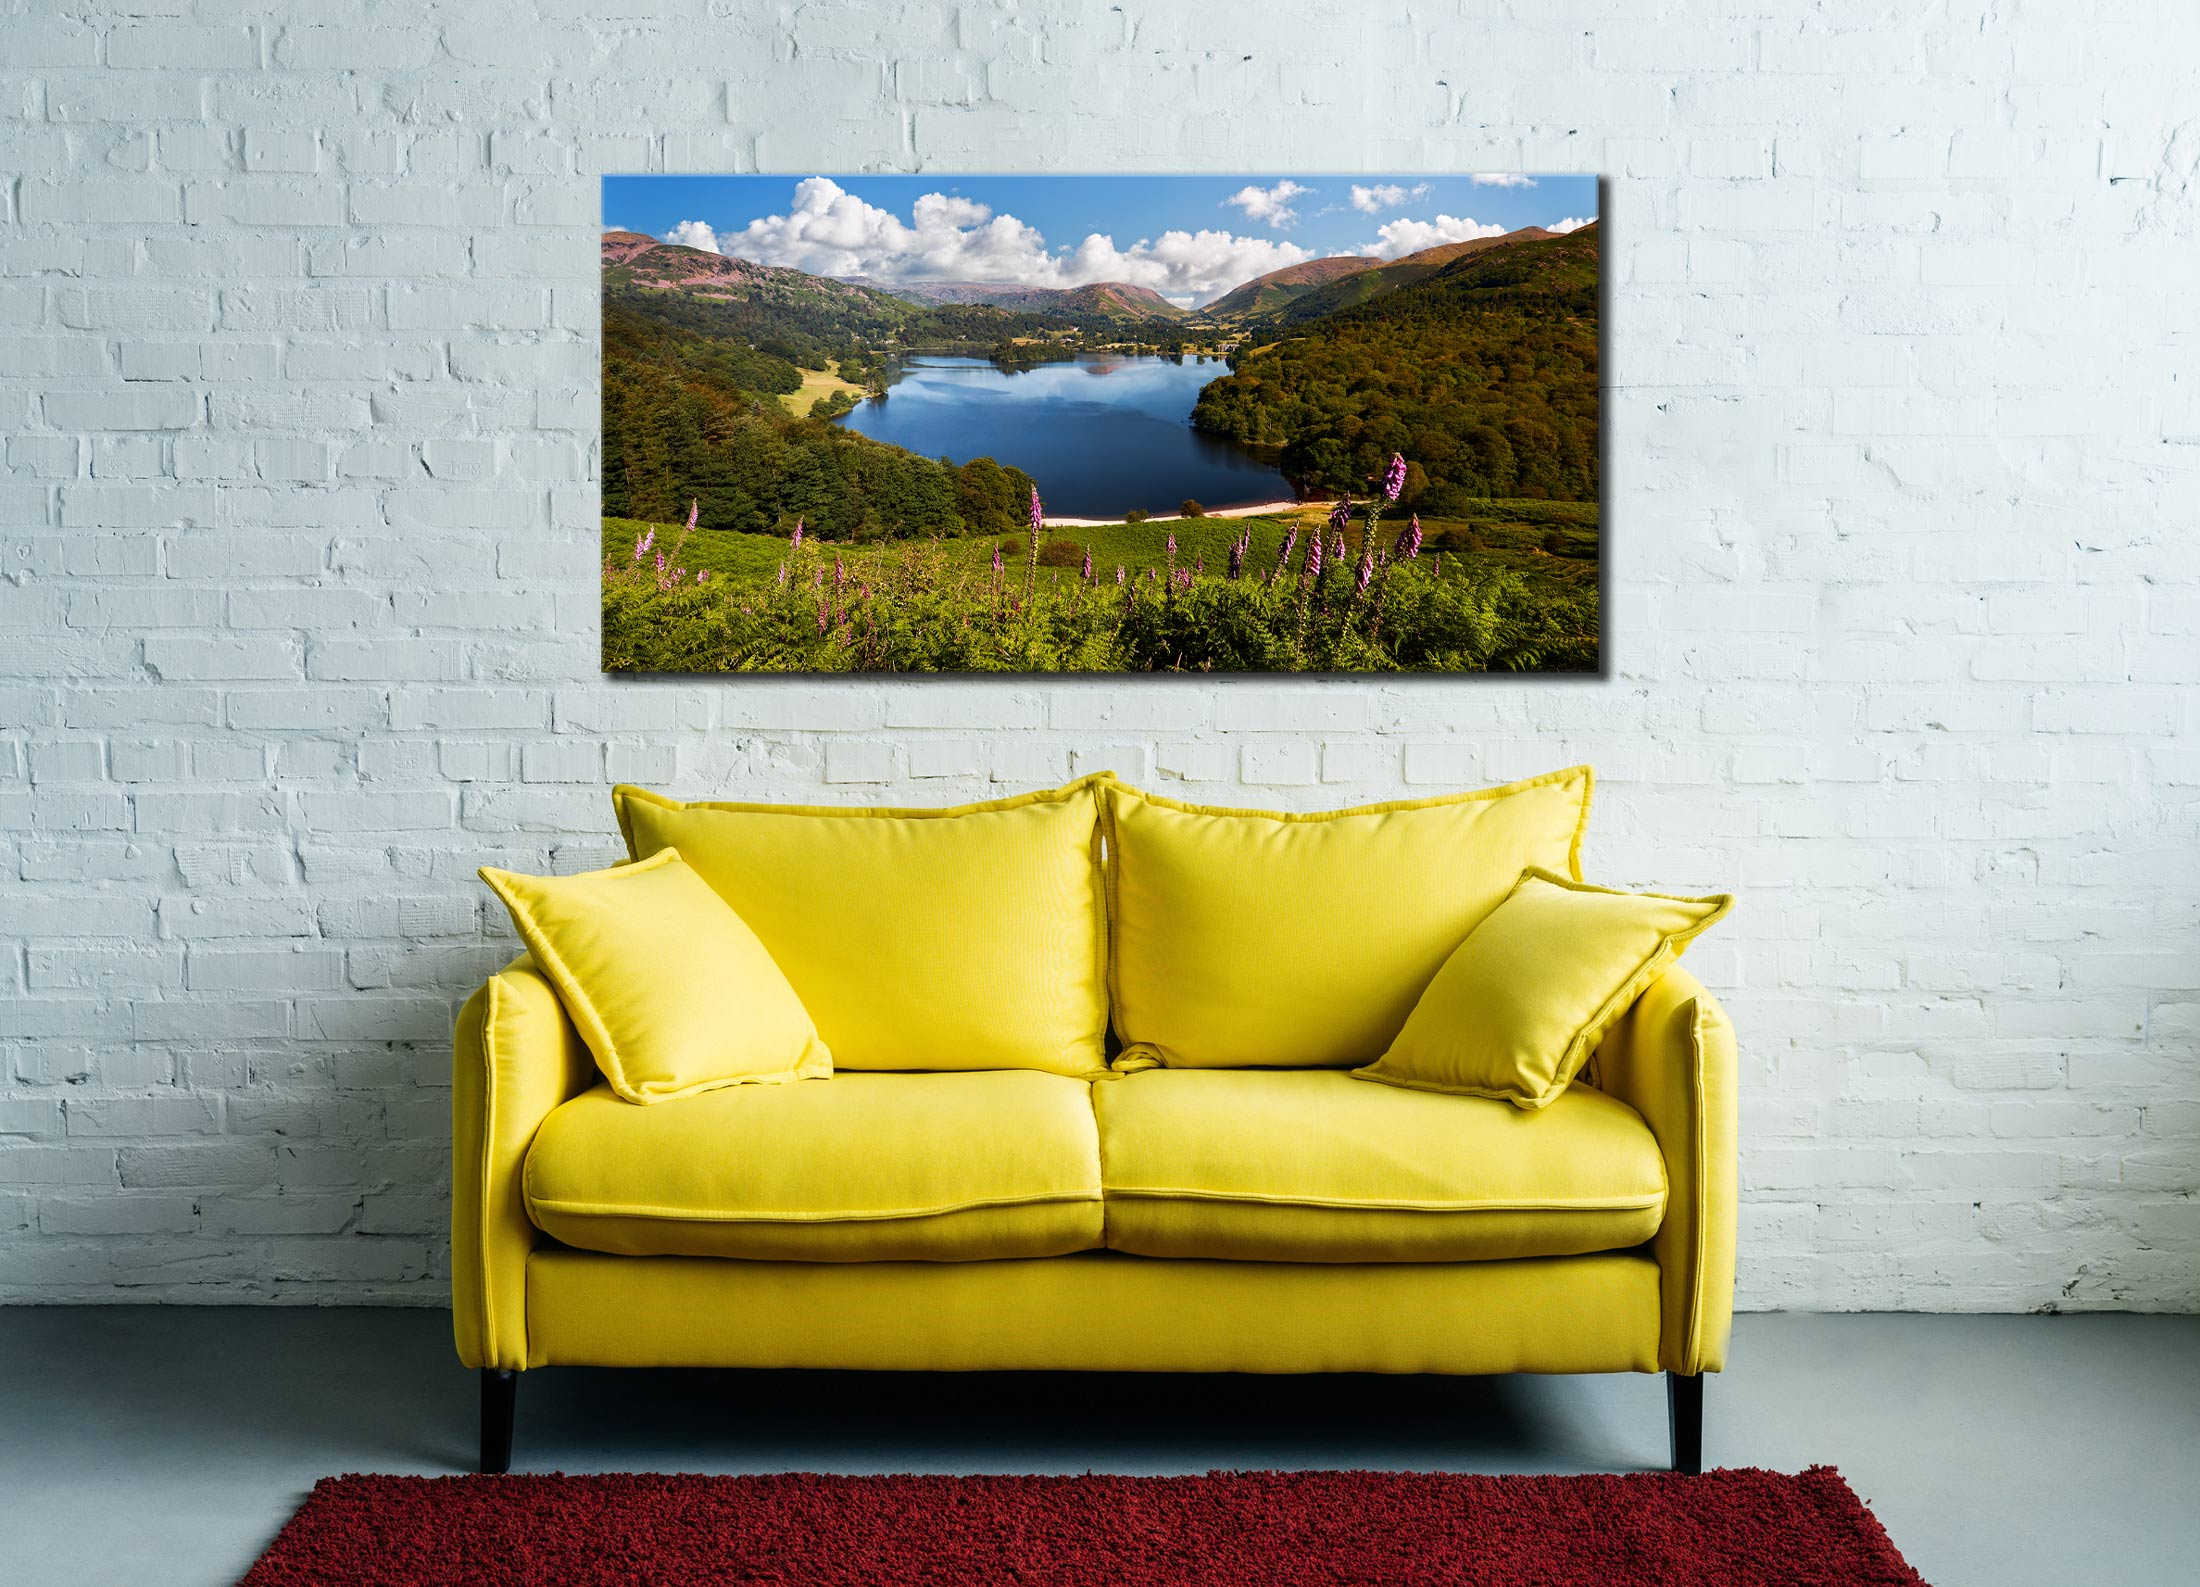 Summer at Grasmere - Canvas Print on Wall